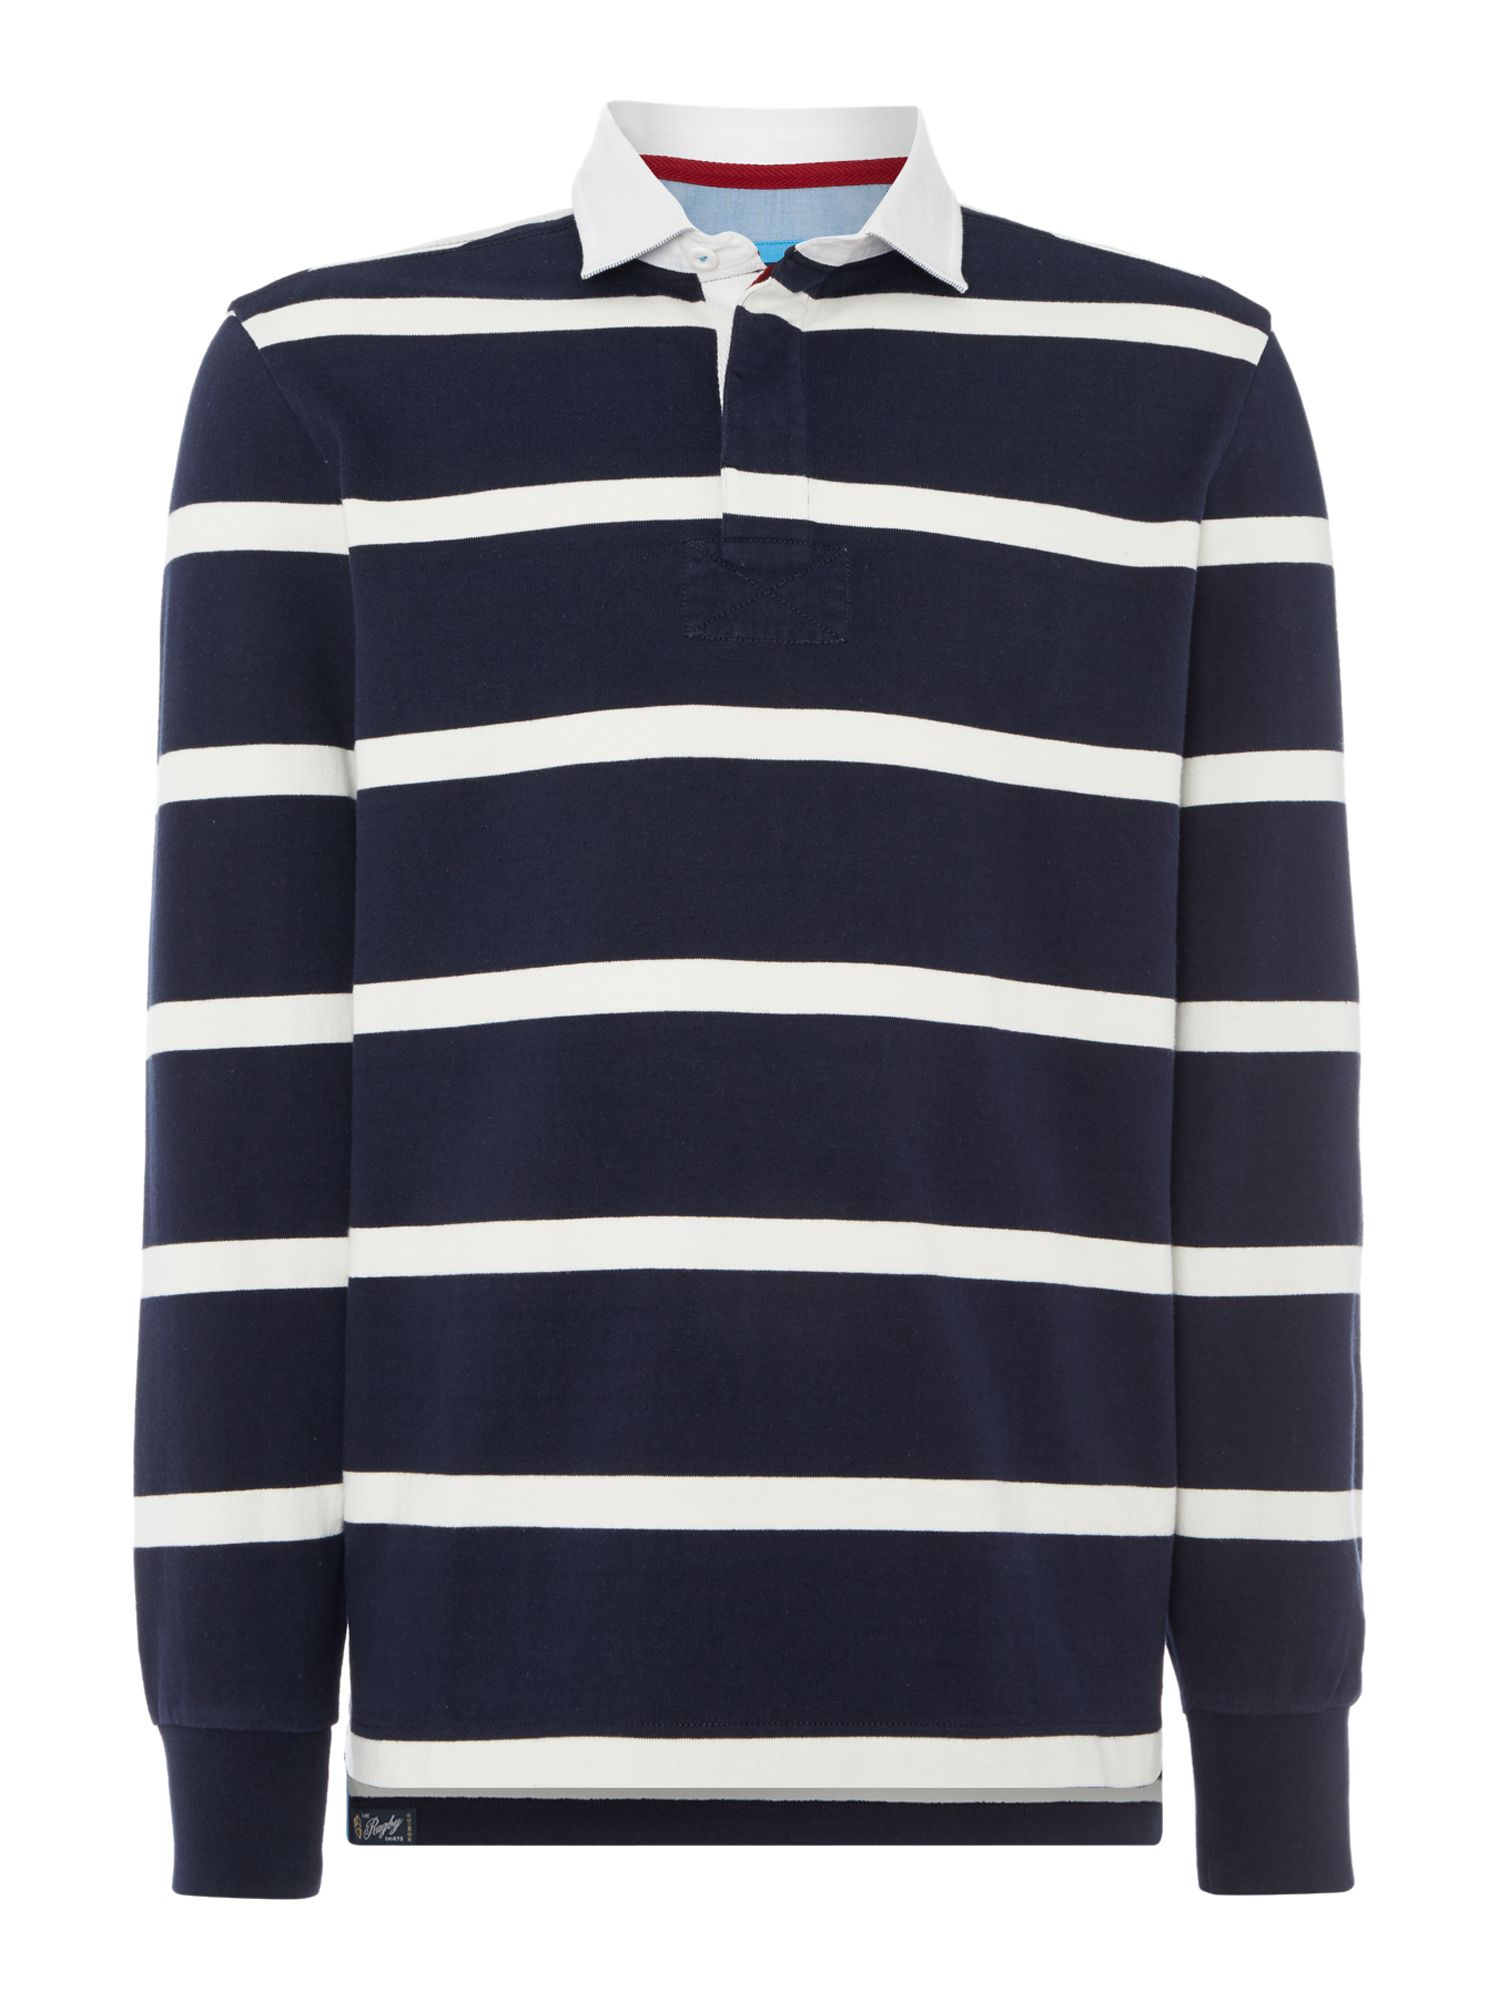 Men's Howick Hockney Striped Rugby Shirt, Blue